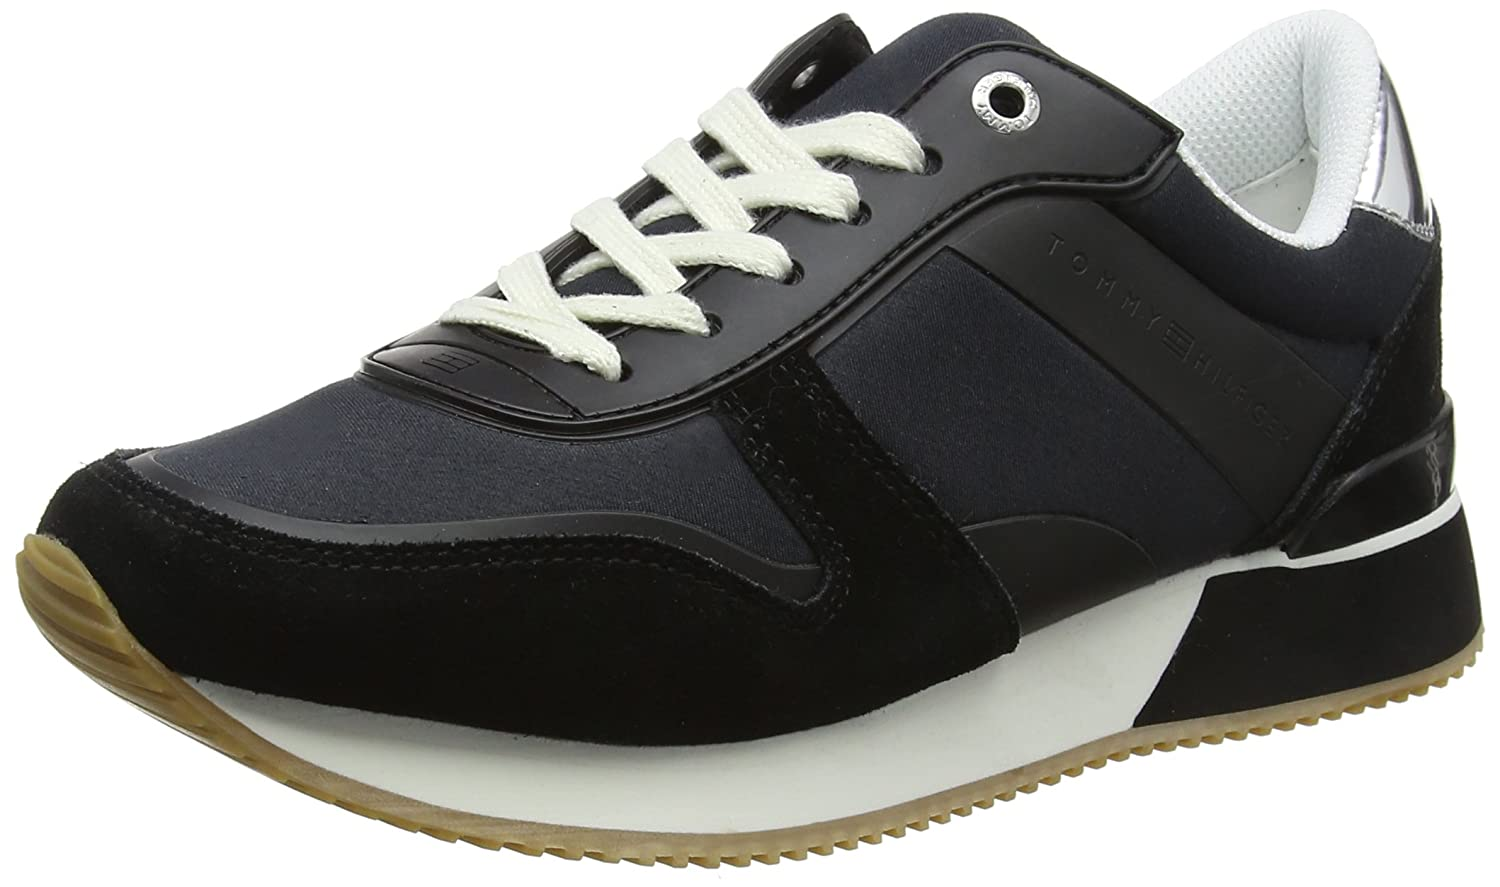 Tommy Hilfiger Mixed Material Lifestyle Sneaker, Zapatillas para Mujer 39 EU|Negro (Black 990)